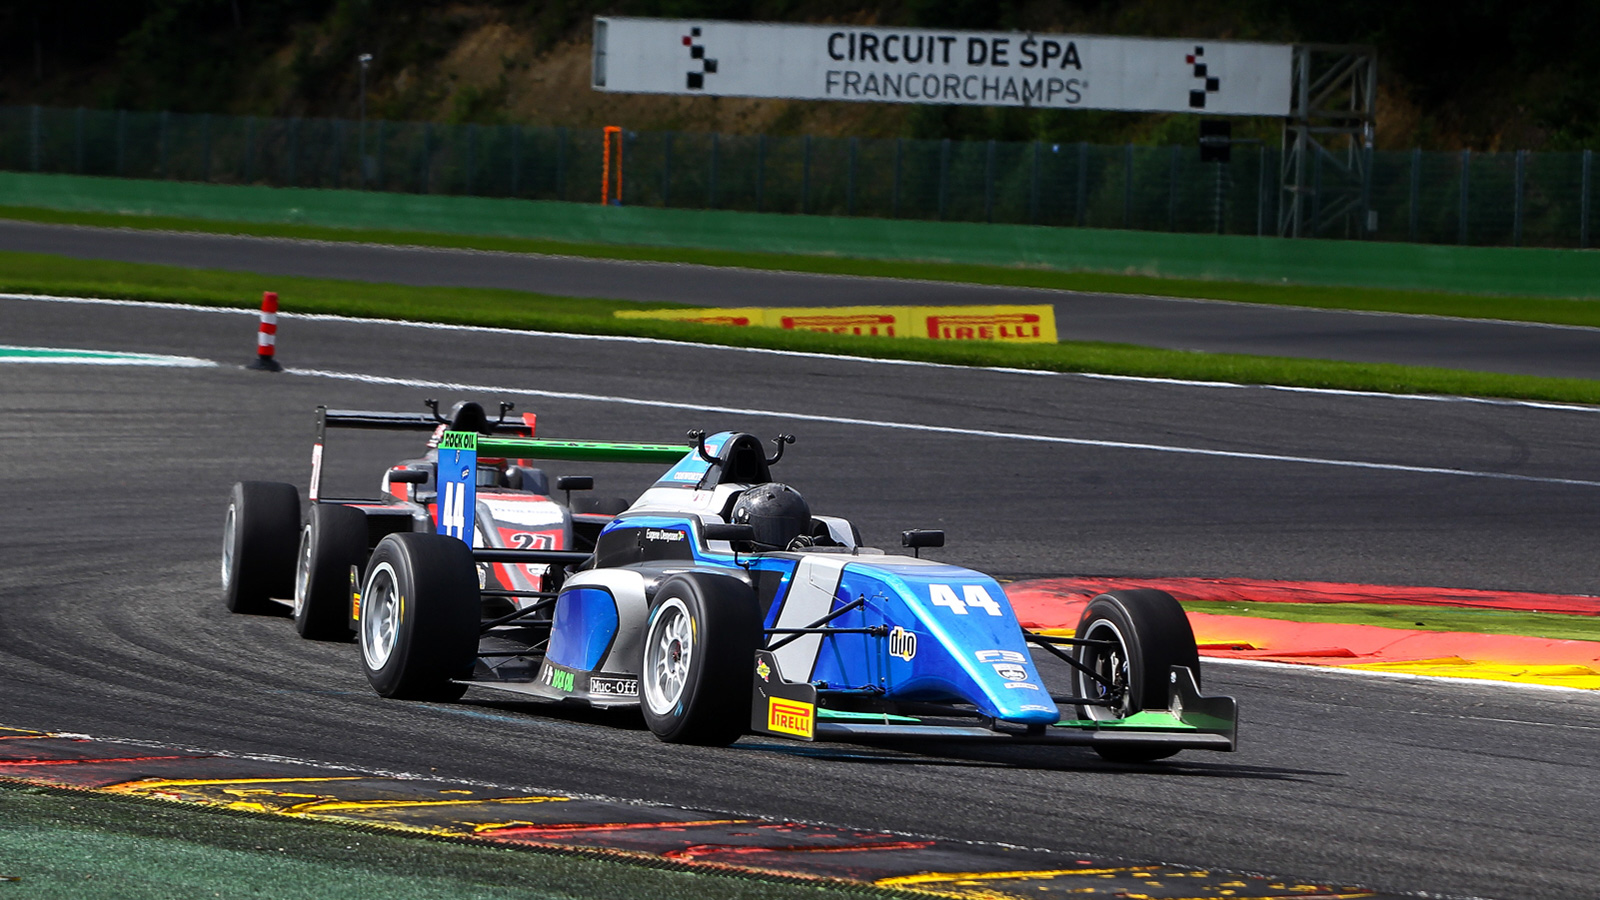 Highlight performance in race three with Maxwell P7 and Denyssen P8